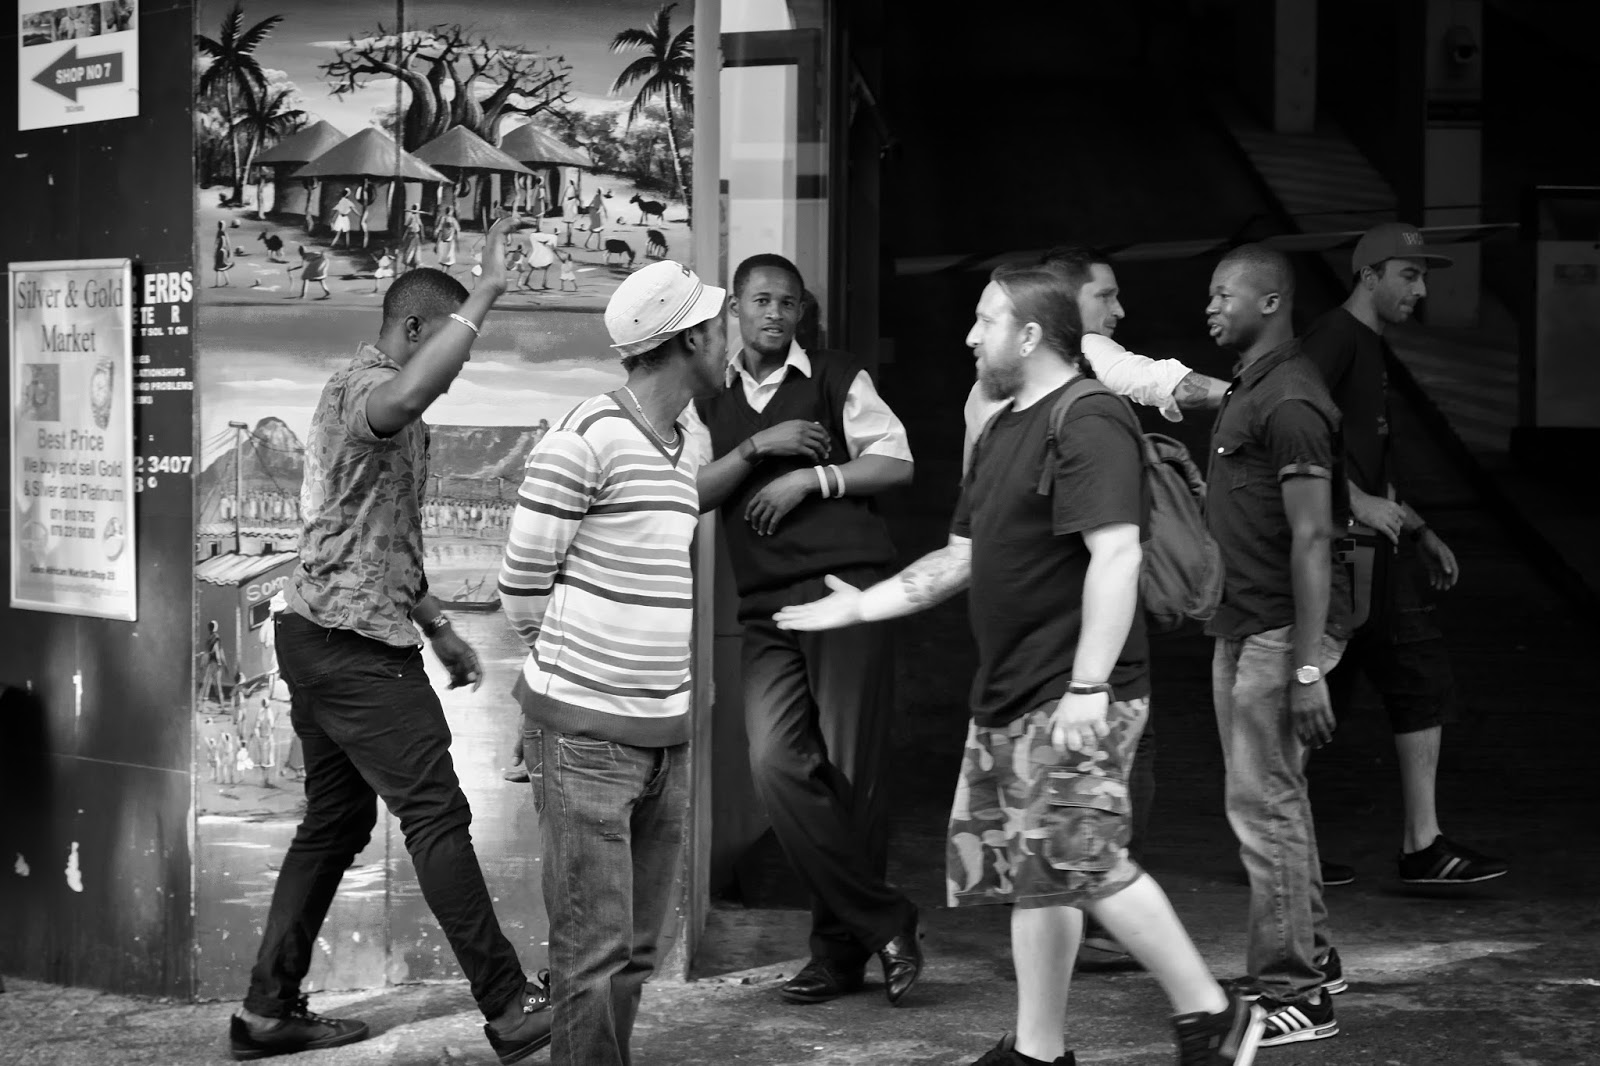 Two mean give each other some skin in this street photo